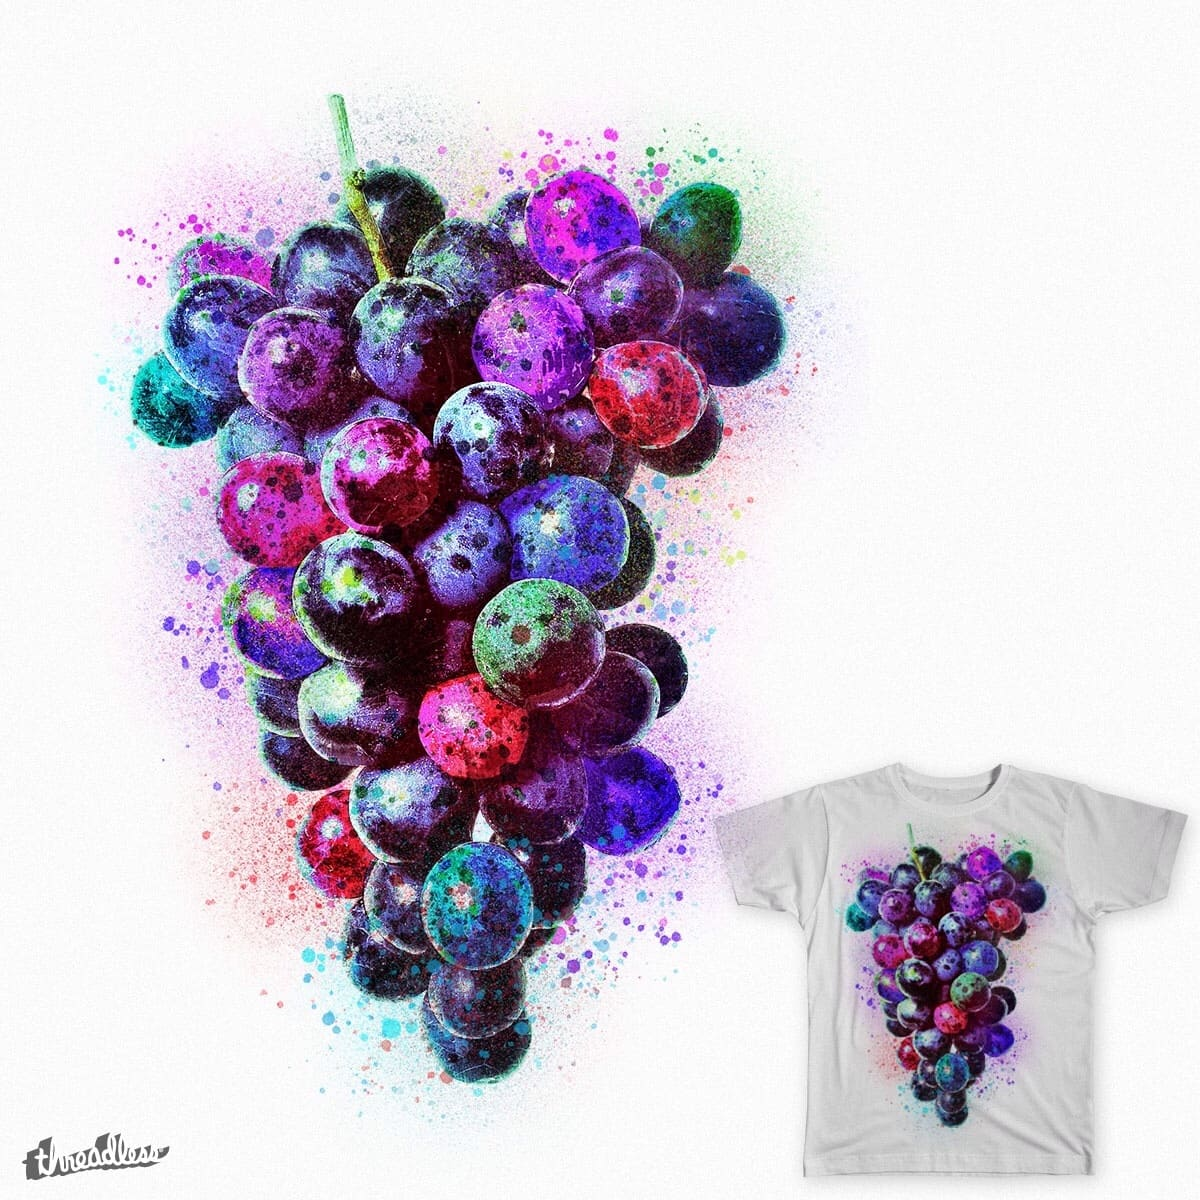 Galactic Grapes by spaceplusminus on Threadless